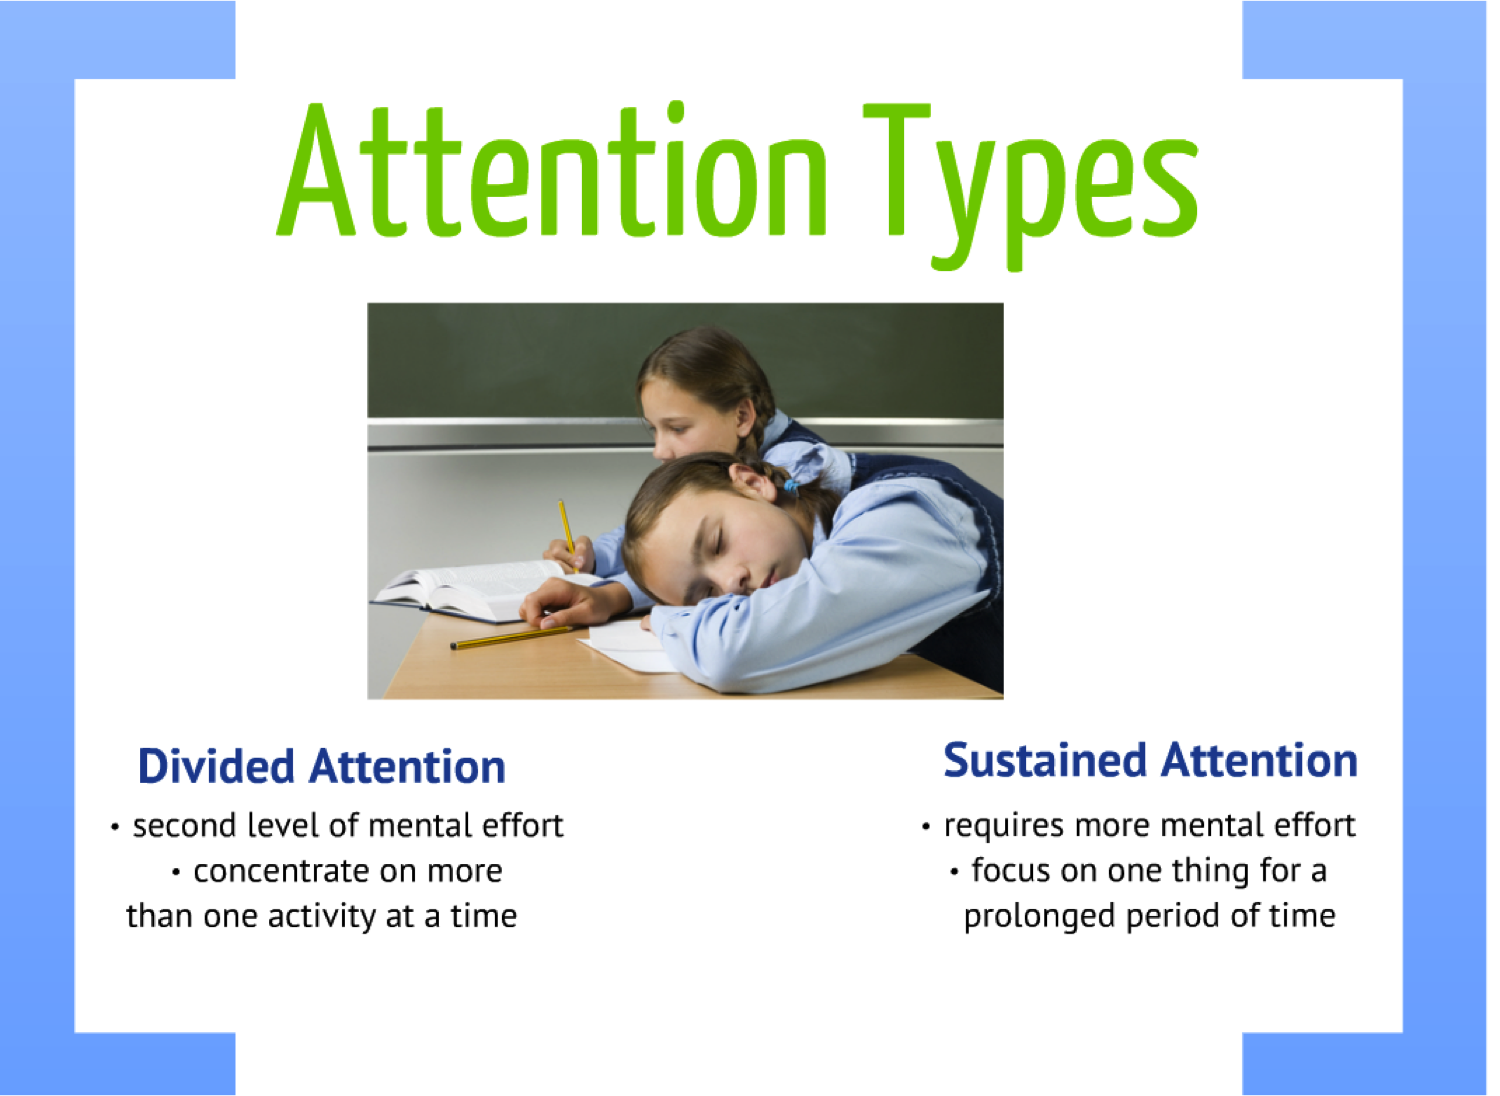 dividing attention That divided attention effects occur, starting with simple stimuli and tasks as we did with selective attention we then offer an initial theoretical analysis, asking what aspect of processing is the.